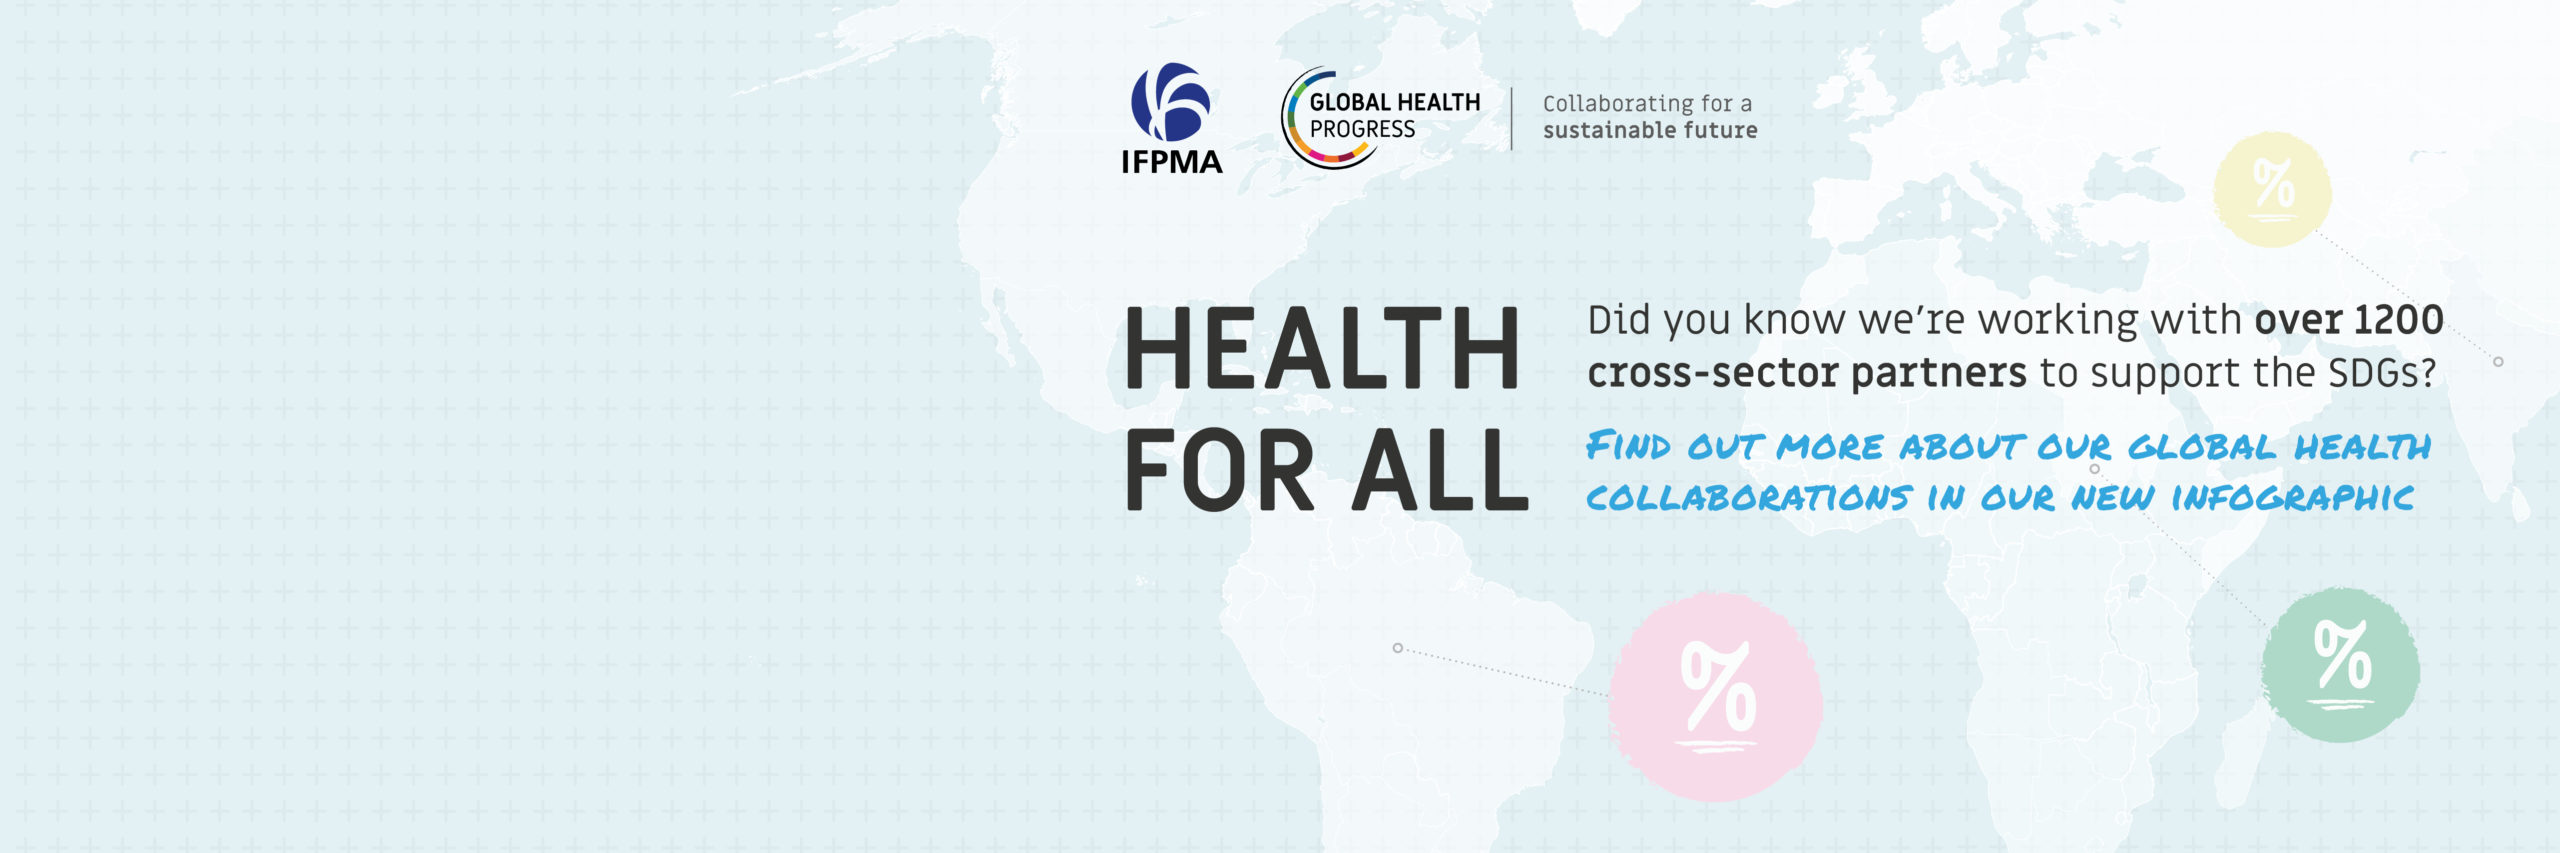 Health for All – Our Collaborations Supporting the SDGs